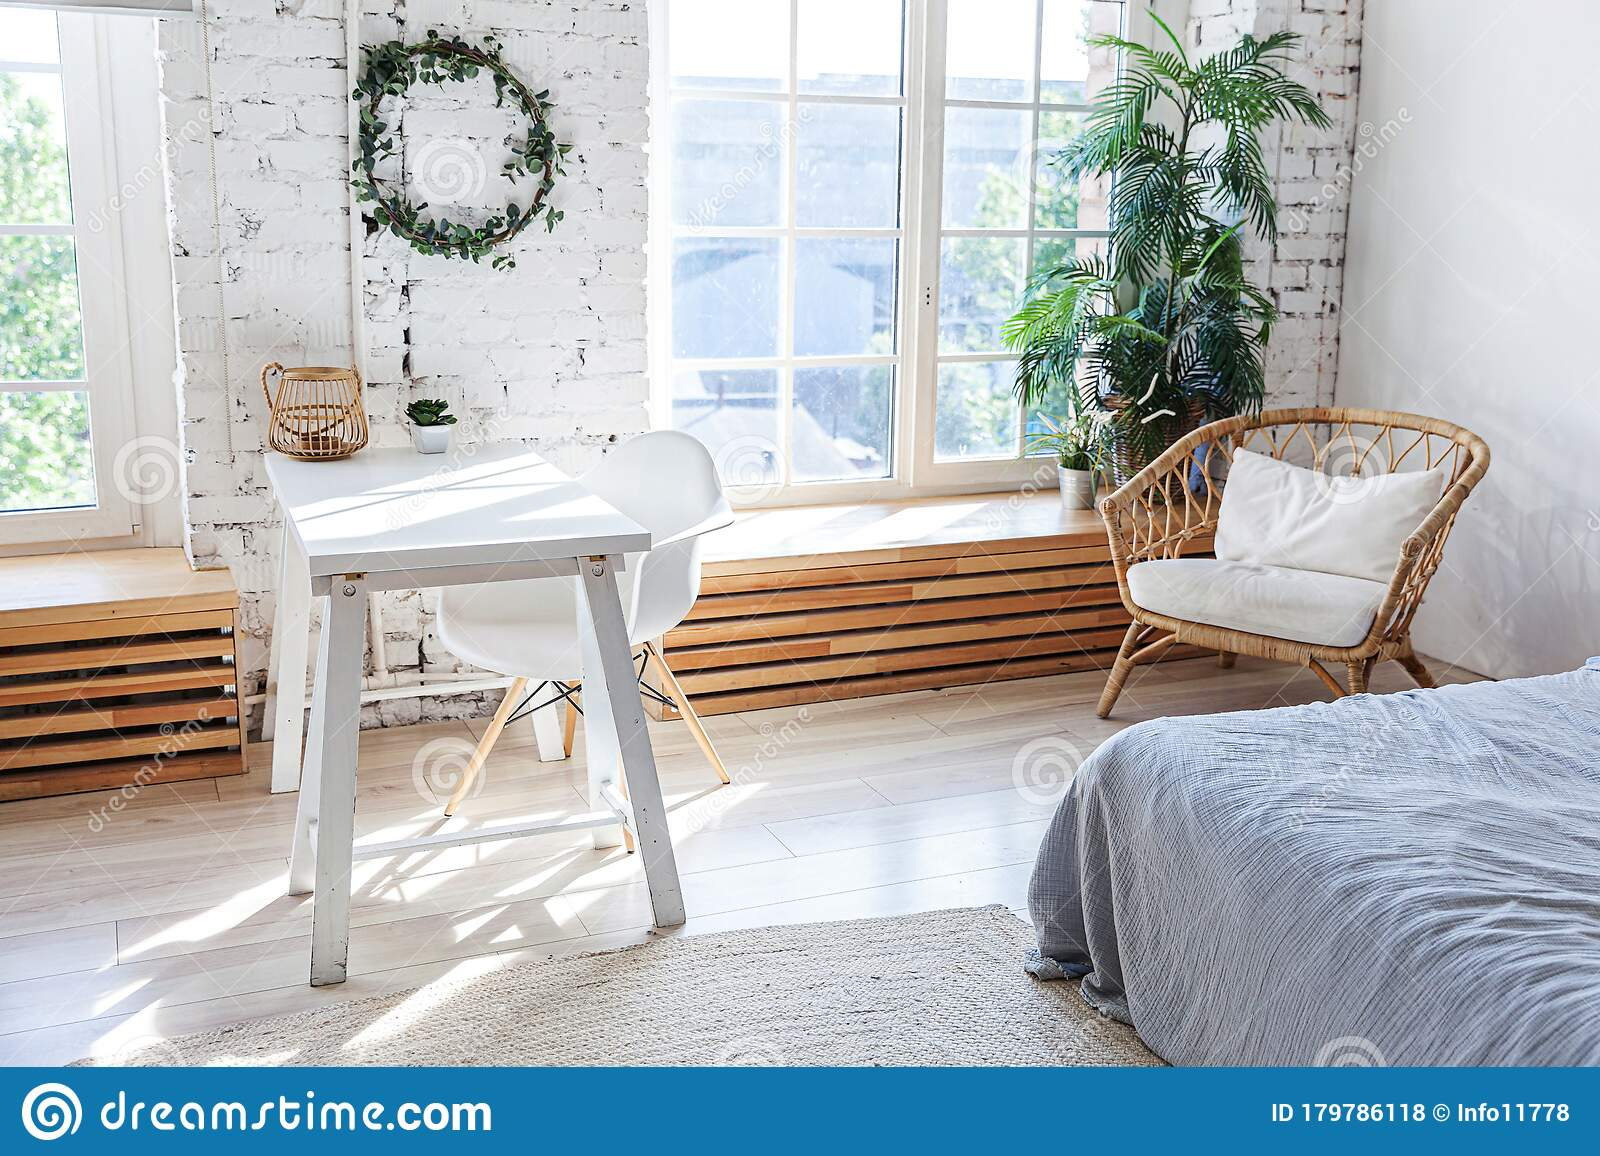 Stylish Loft Modern Home Office Interior Spacious Design Apartment With Light Walls Large Windows And Writing Desk Clean Modern Stock Photo Image Of Expensive Living 179786118